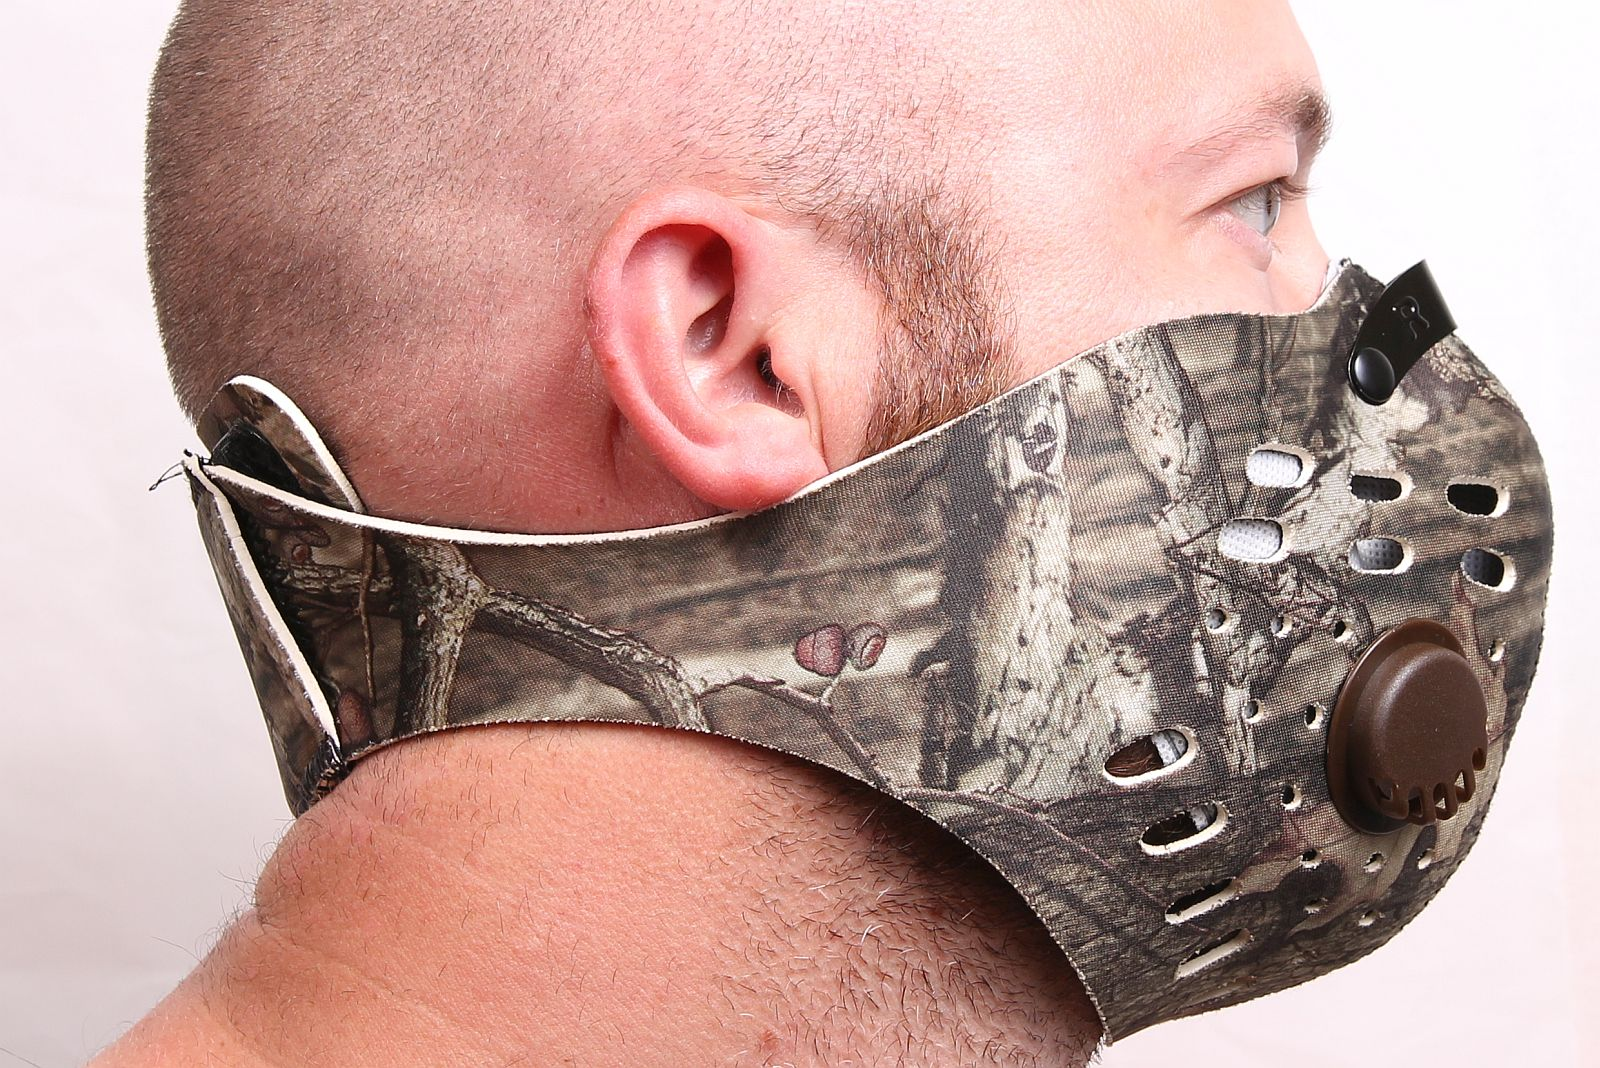 mask hunting face masks rz mouth industries balaclava side breath guy vent huntinggearguy